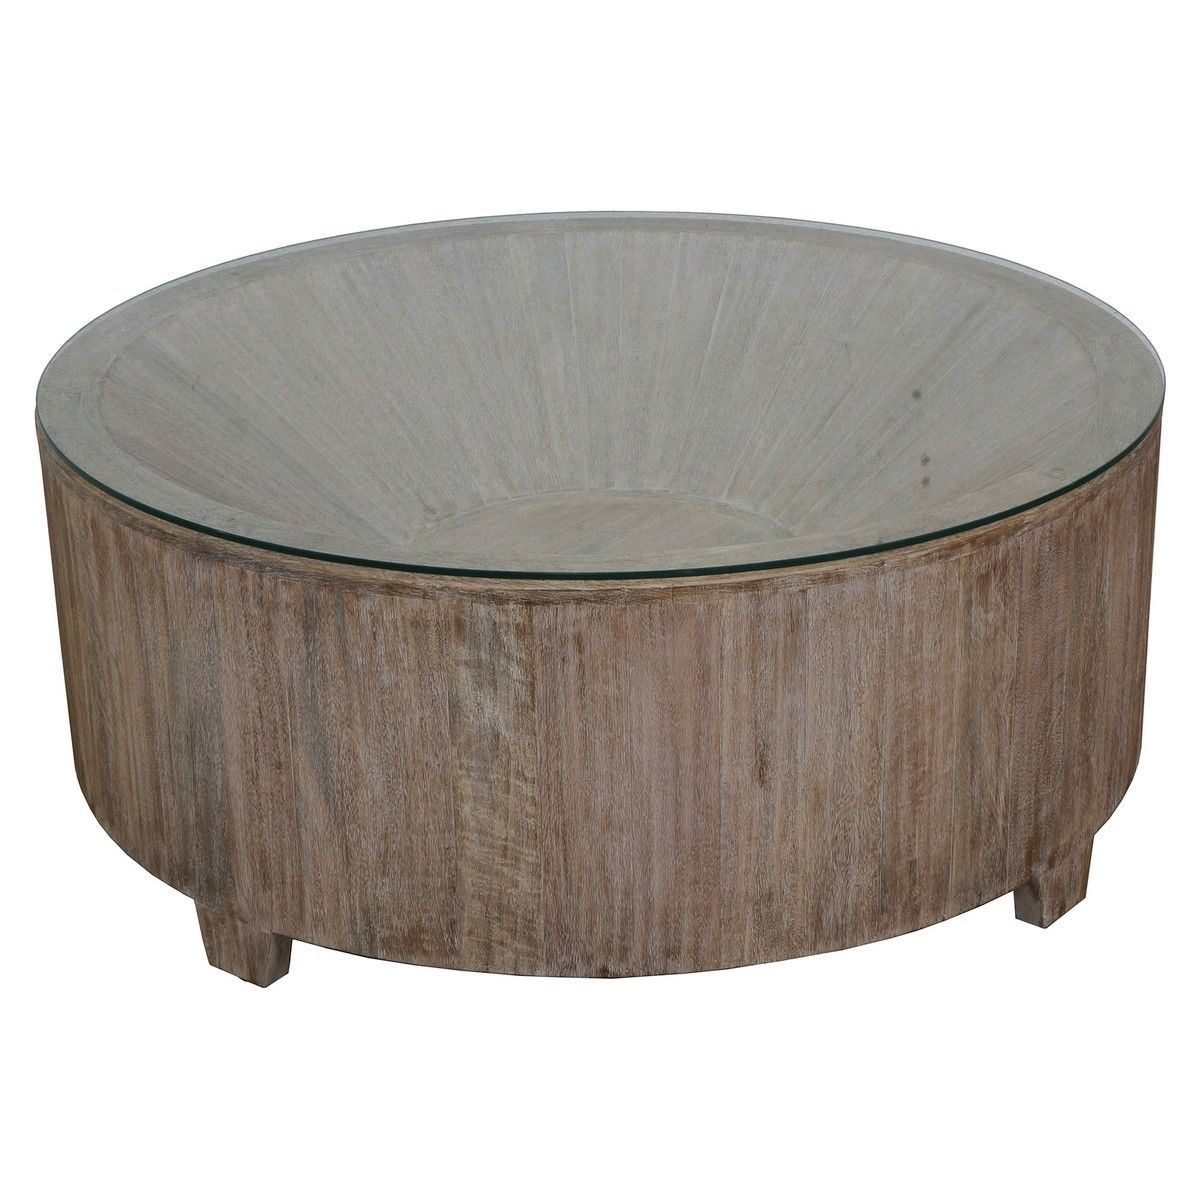 Biron Teak Timber Round Coffee Table with Glass Top, 90cm